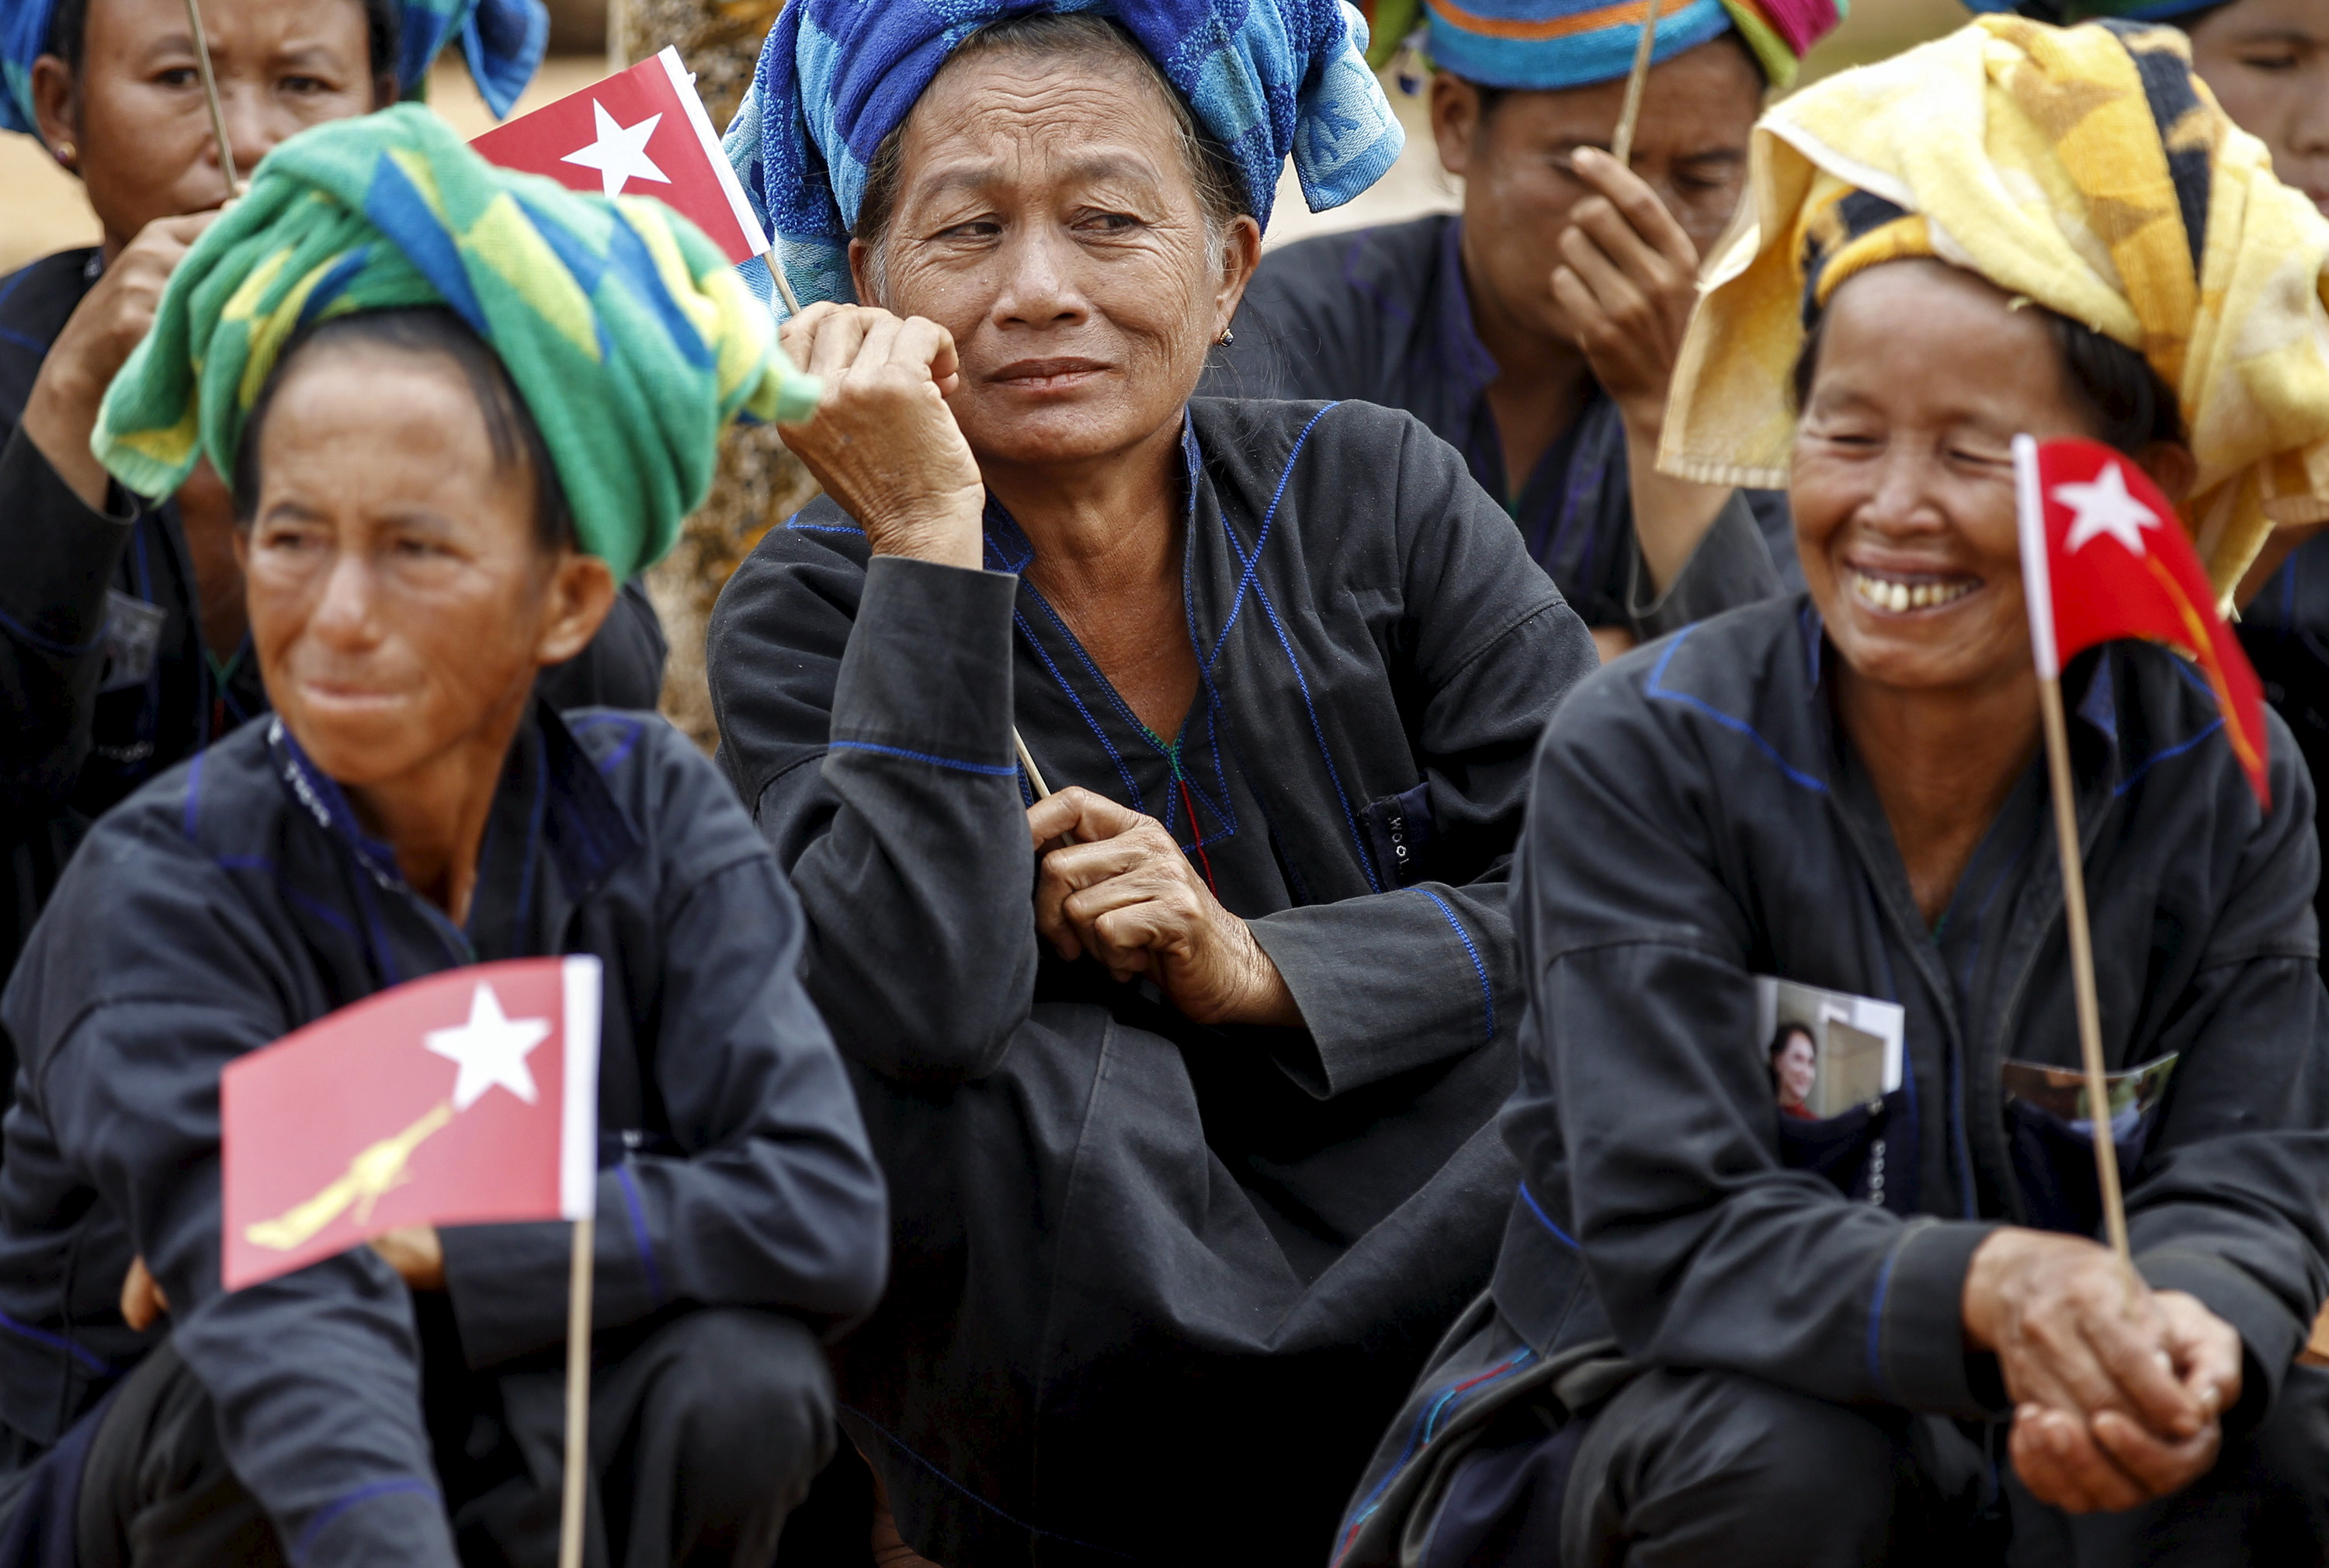 Ethnic Pa'O women sit as they wait for Burmese pro-democracy leader Aung San Suu Kyi to arrive to speak on voter education at the Hsiseng township in Shan state, Myanmar Sept. 5, 2015